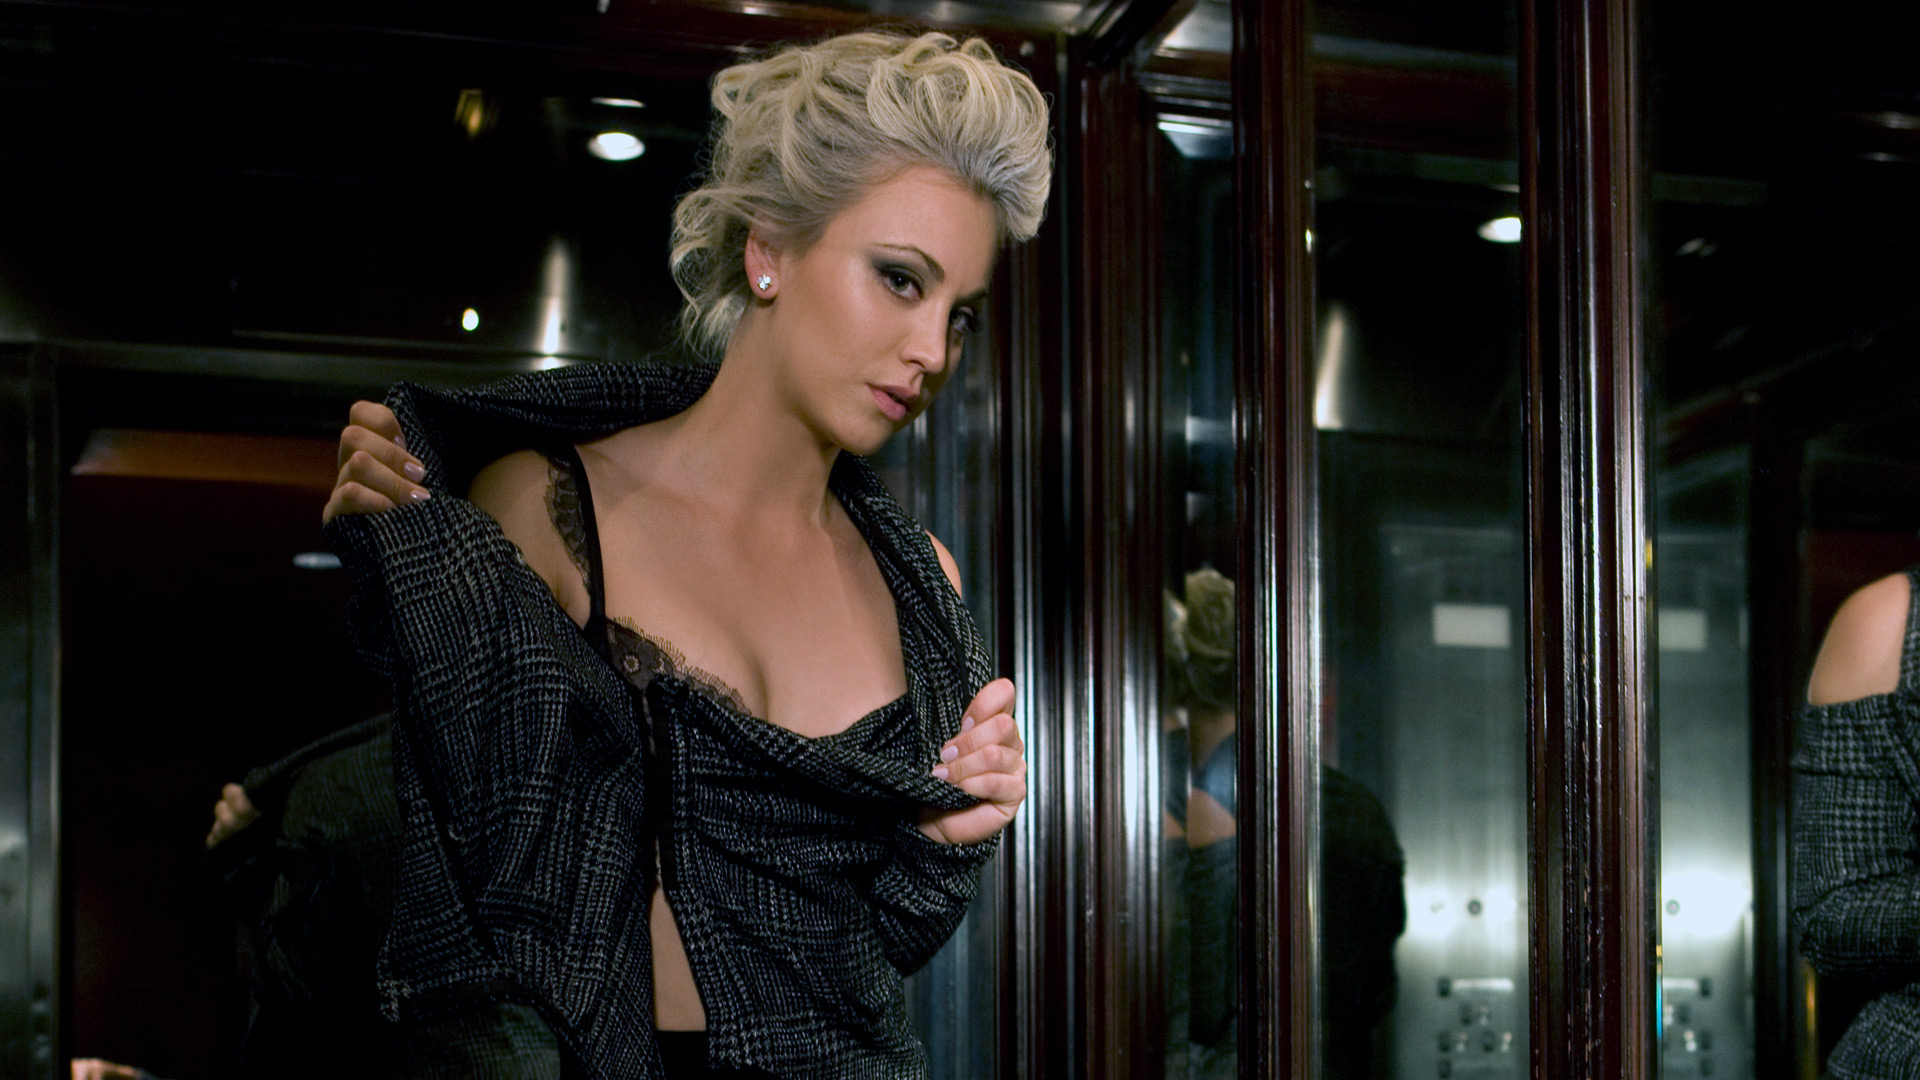 Kaley Cuoco gets into character